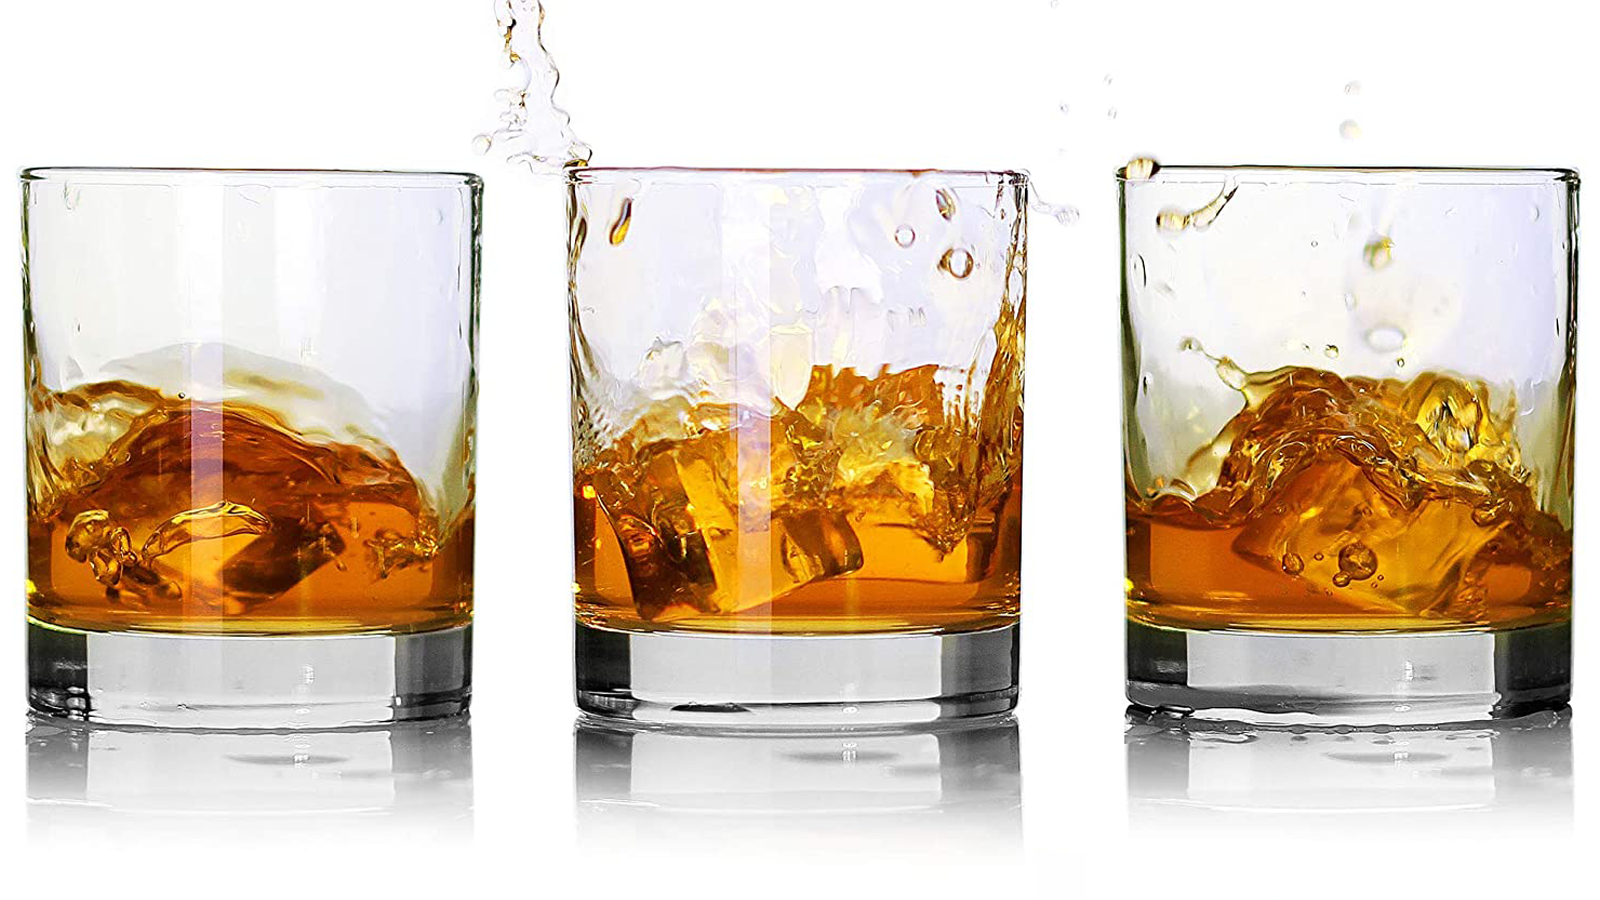 Upgrade Your Home Bar Setup with a Nice Set of Whiskey Glasses